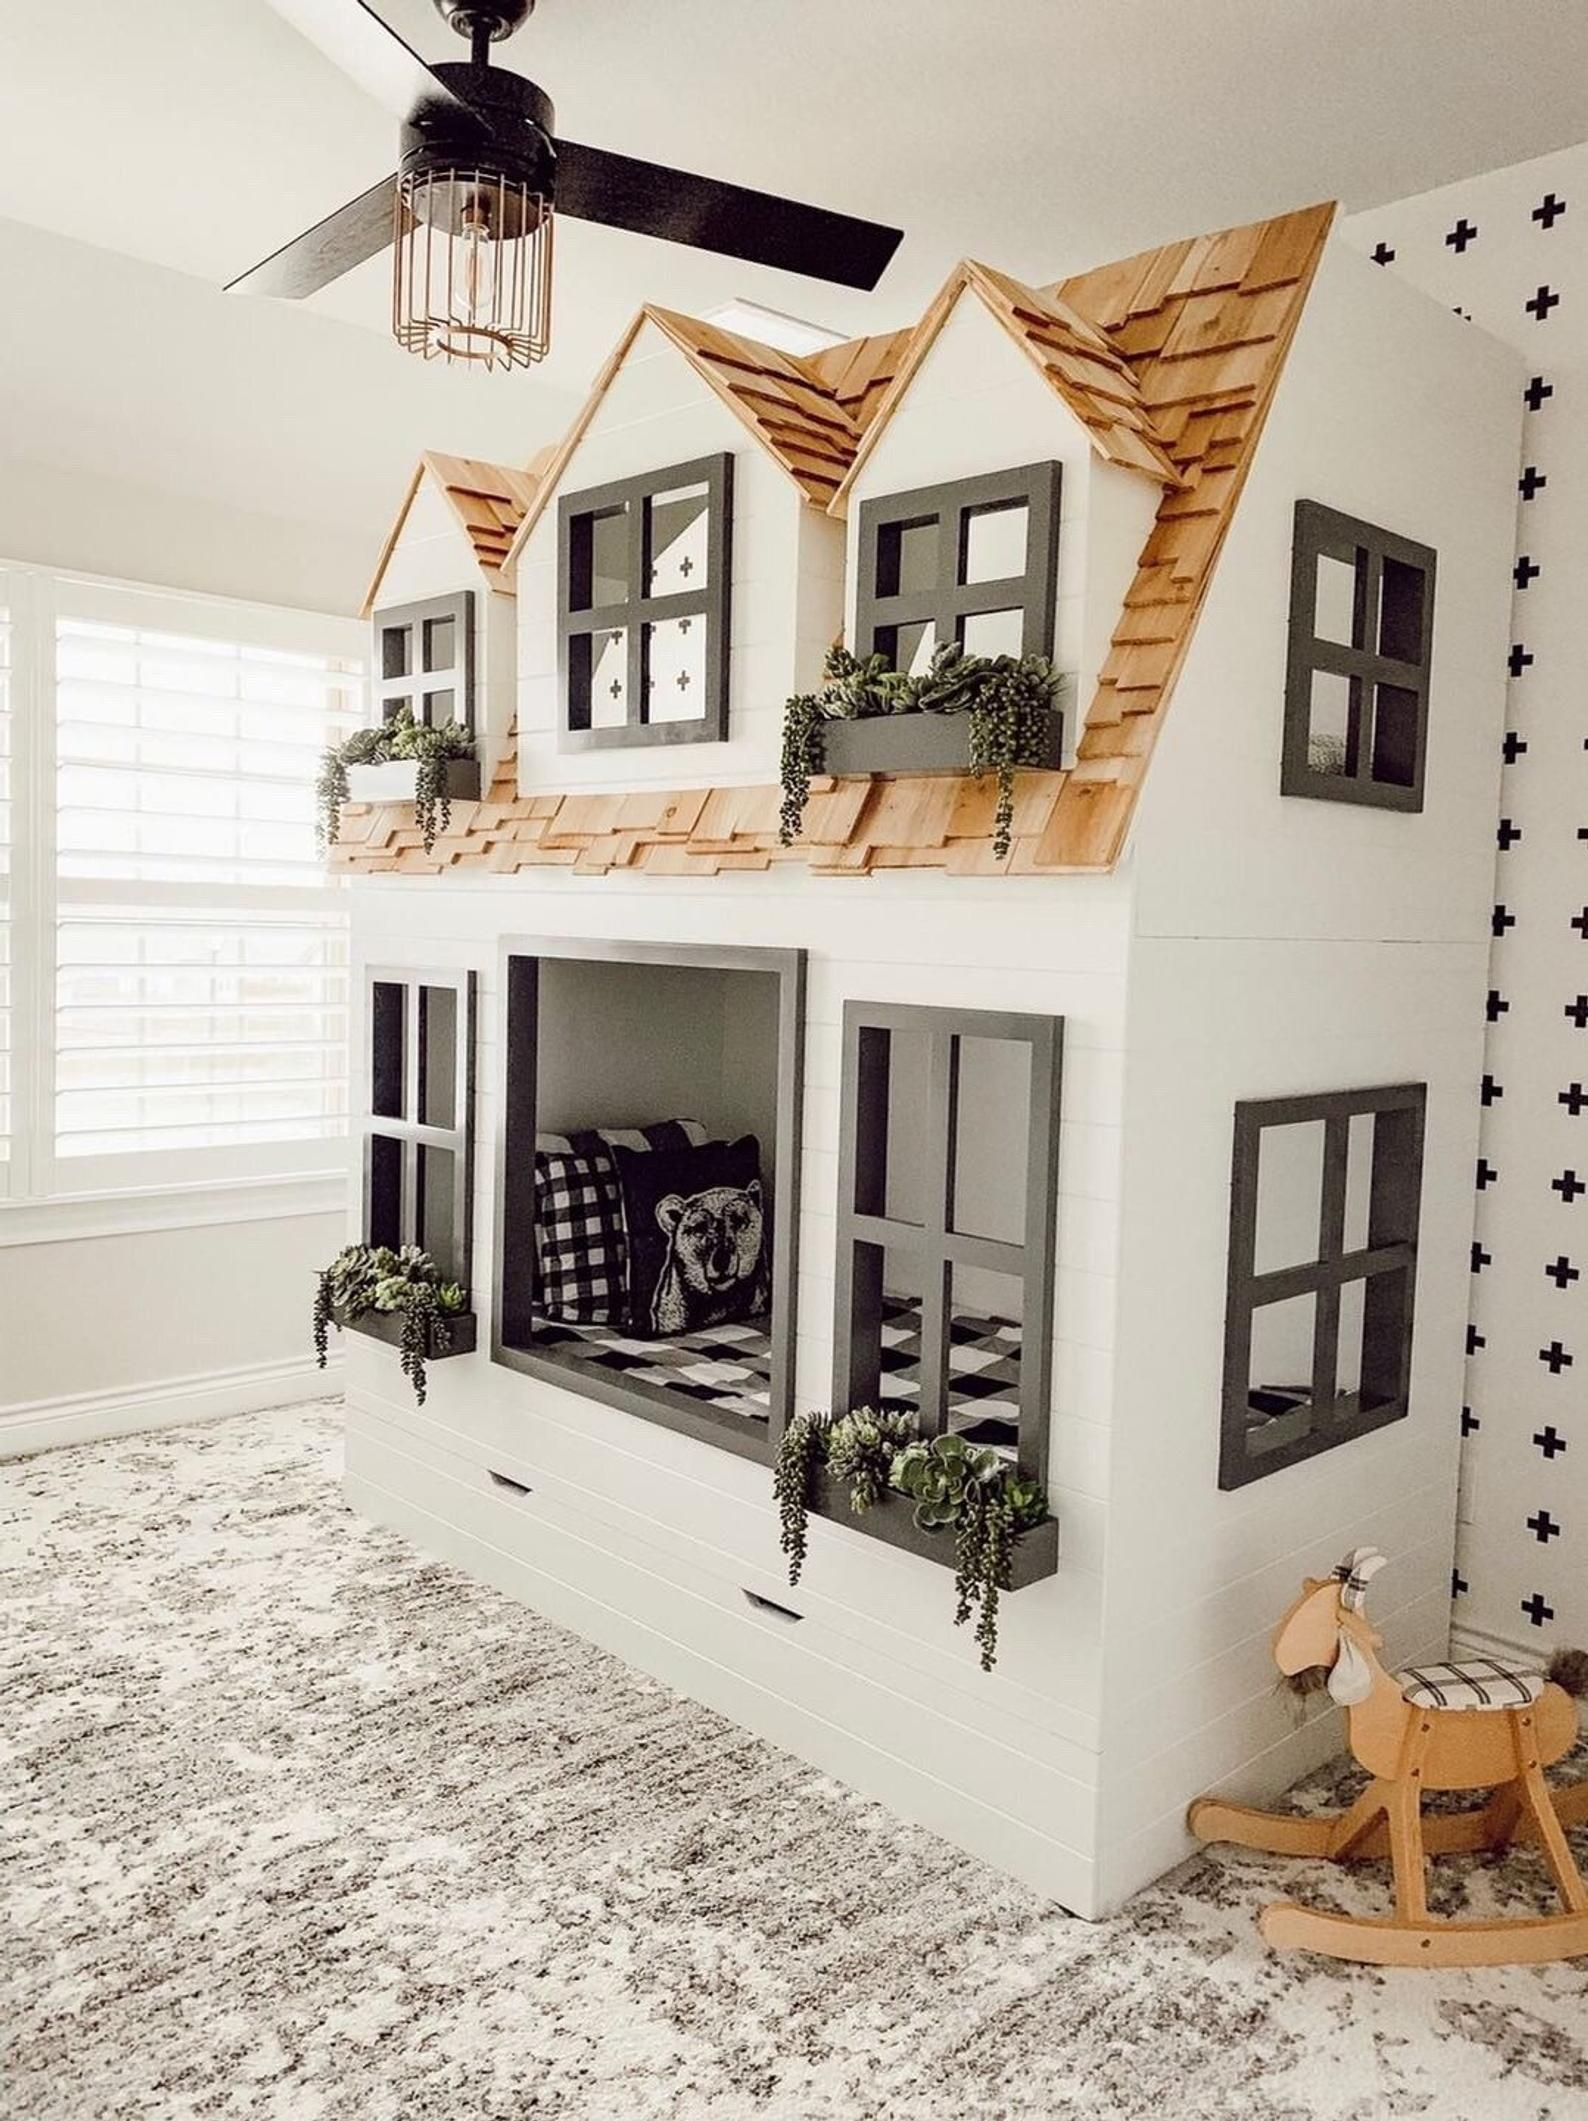 Mia's Country Cottage Bed, Loft, Bunk Bed, Dollhouse o